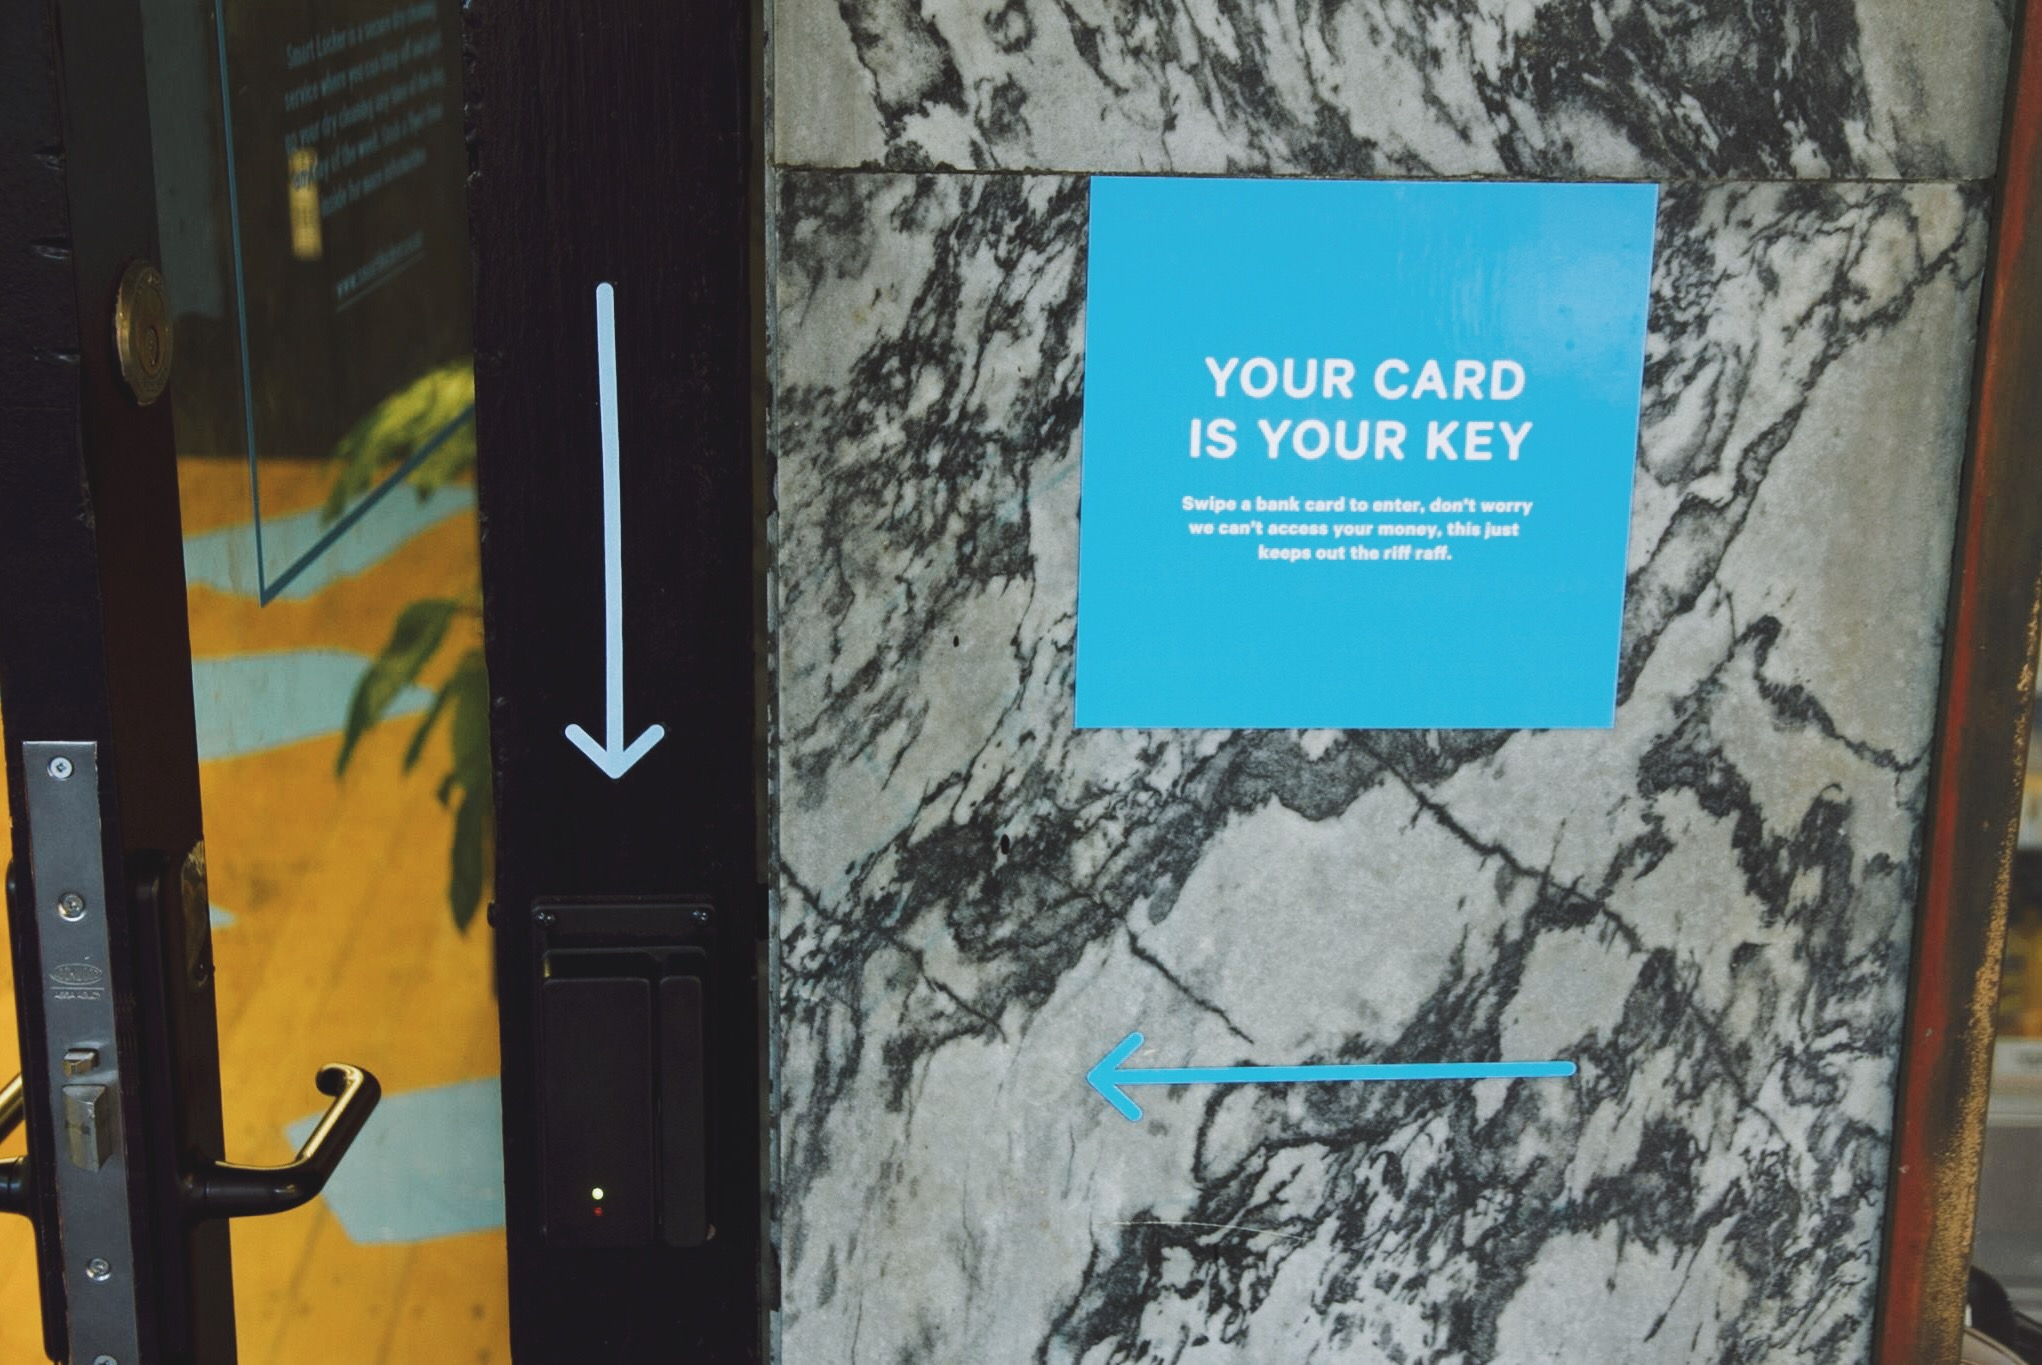 Use your card to open the door at Smart Locker Wellesley St